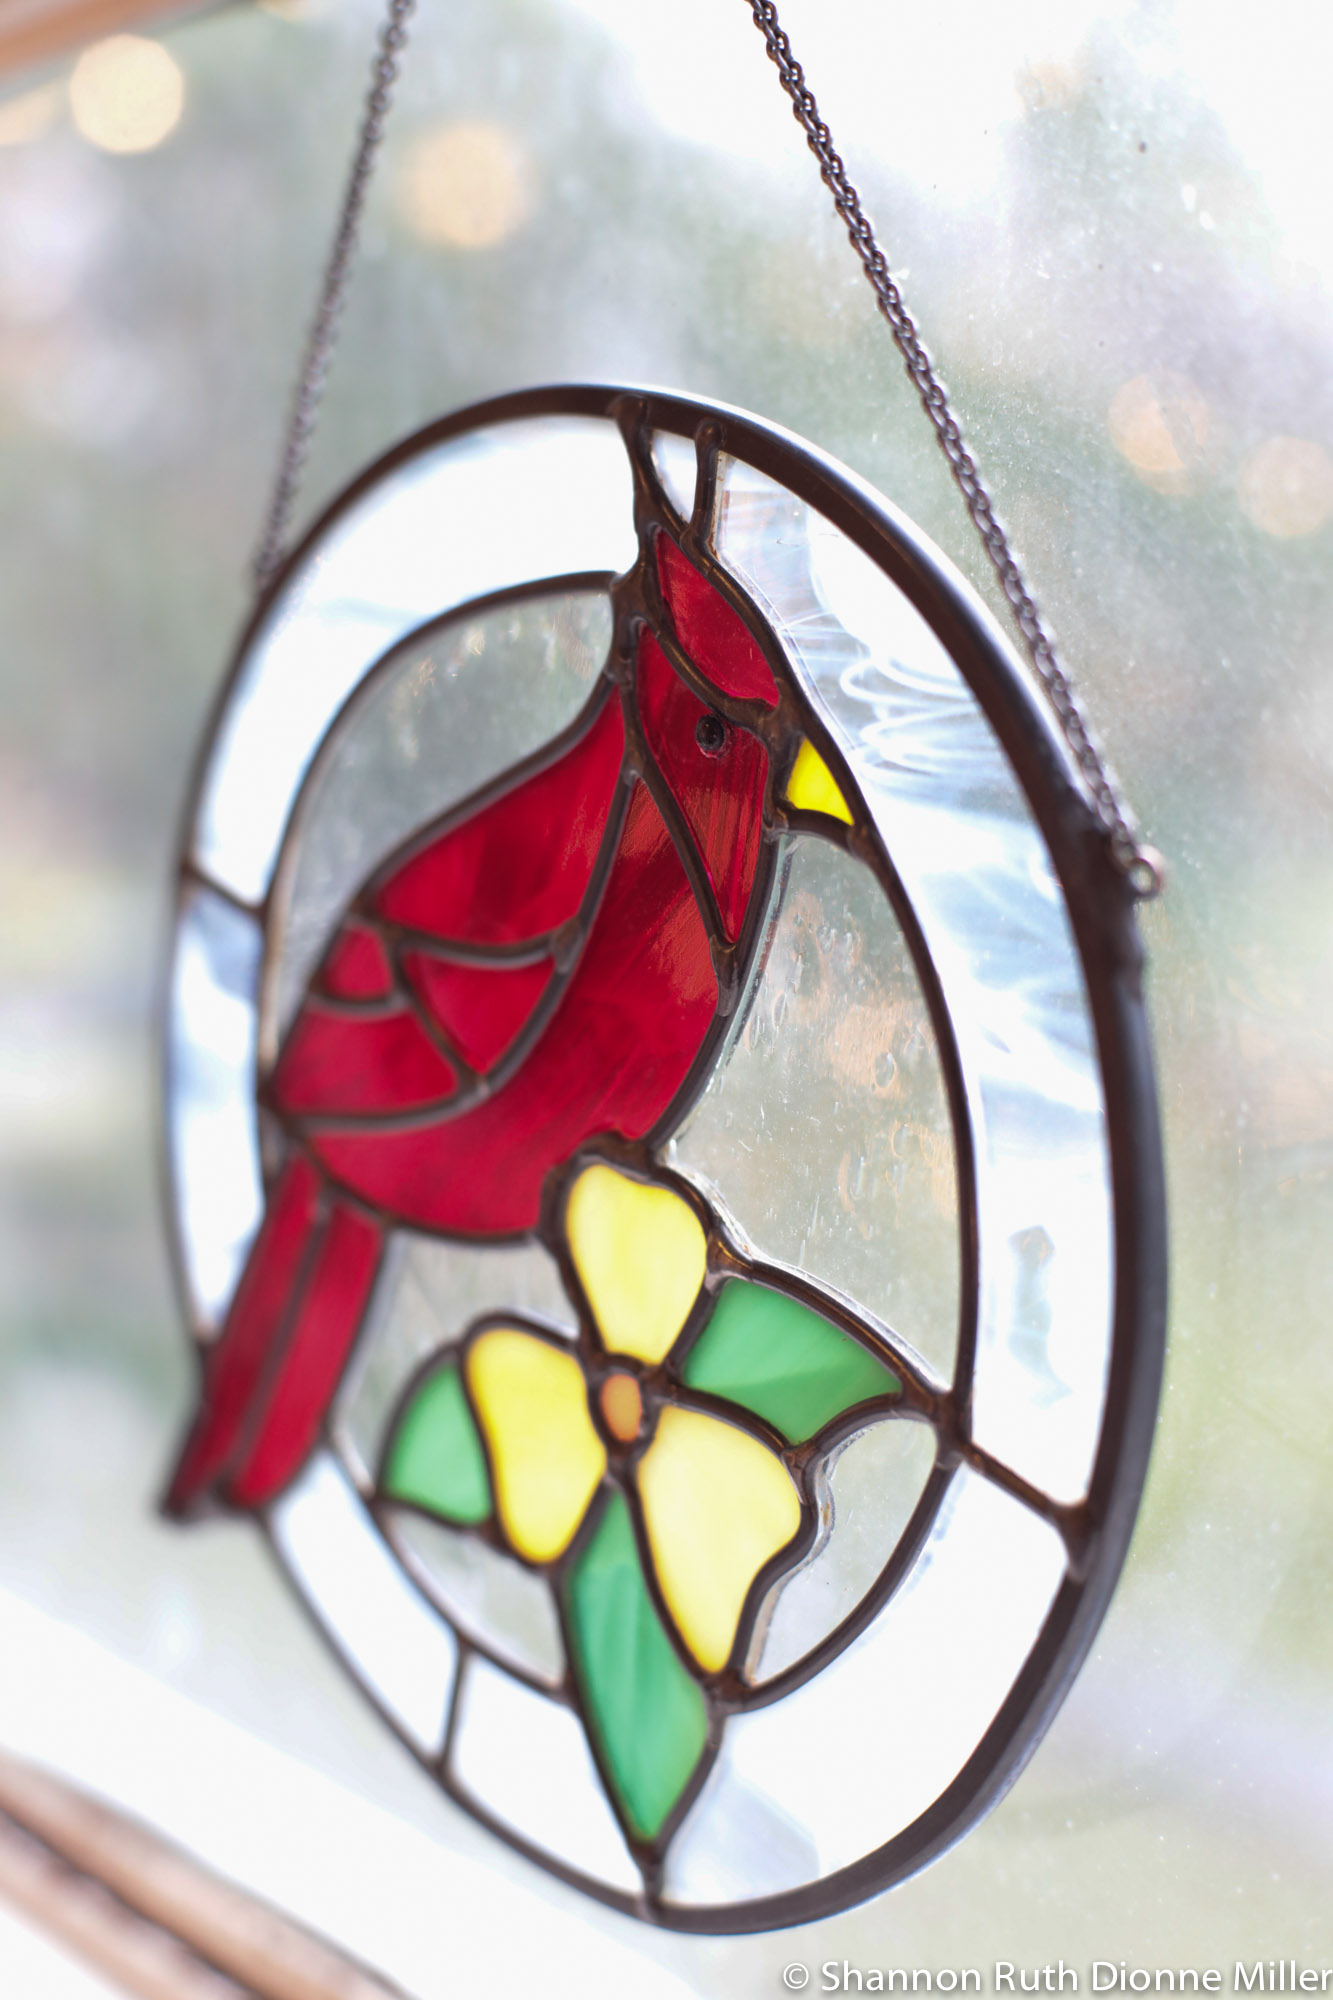 Forest Glass Studio stained glass, Megan Tang.